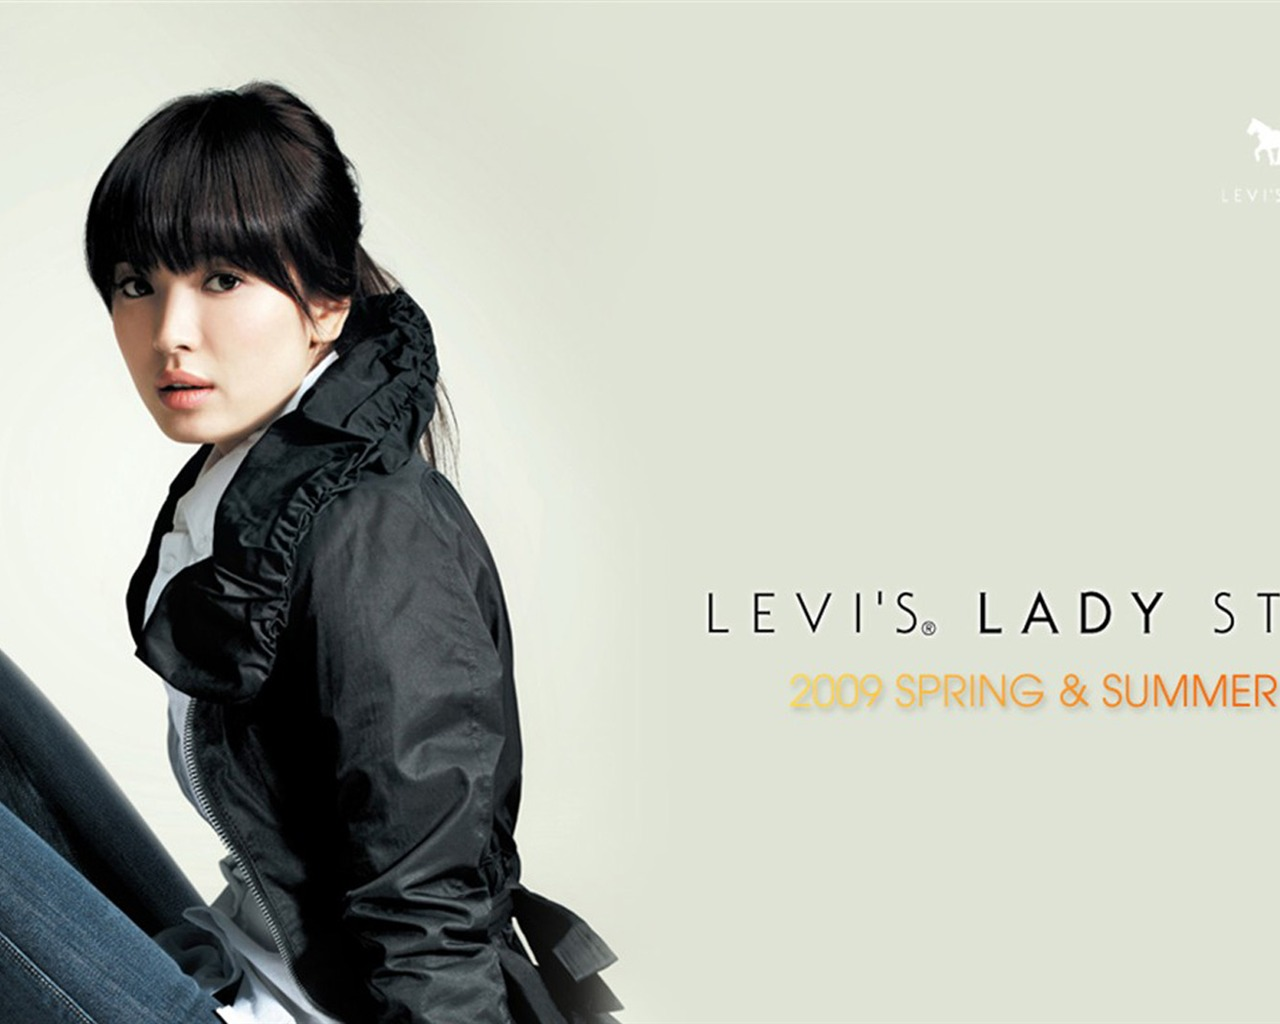 levis lady style clothing - photo #5